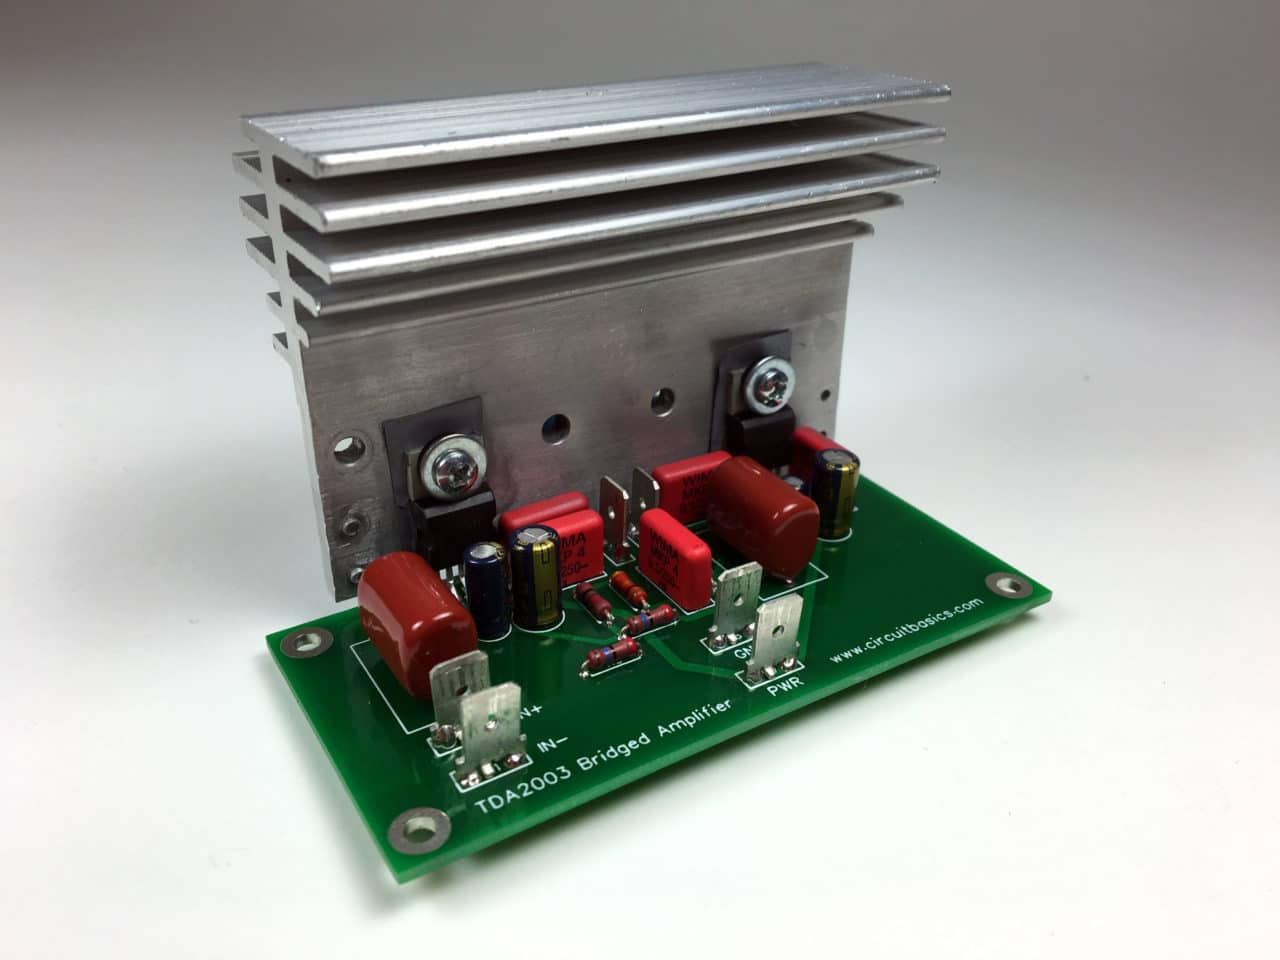 Build A Great Sounding Audio Amplifier With Bass Boost From The Lm386 Class D Power Electronic Circuits And Diagram Guide For Building Tda2003 Bridged Stereo Amplifiers